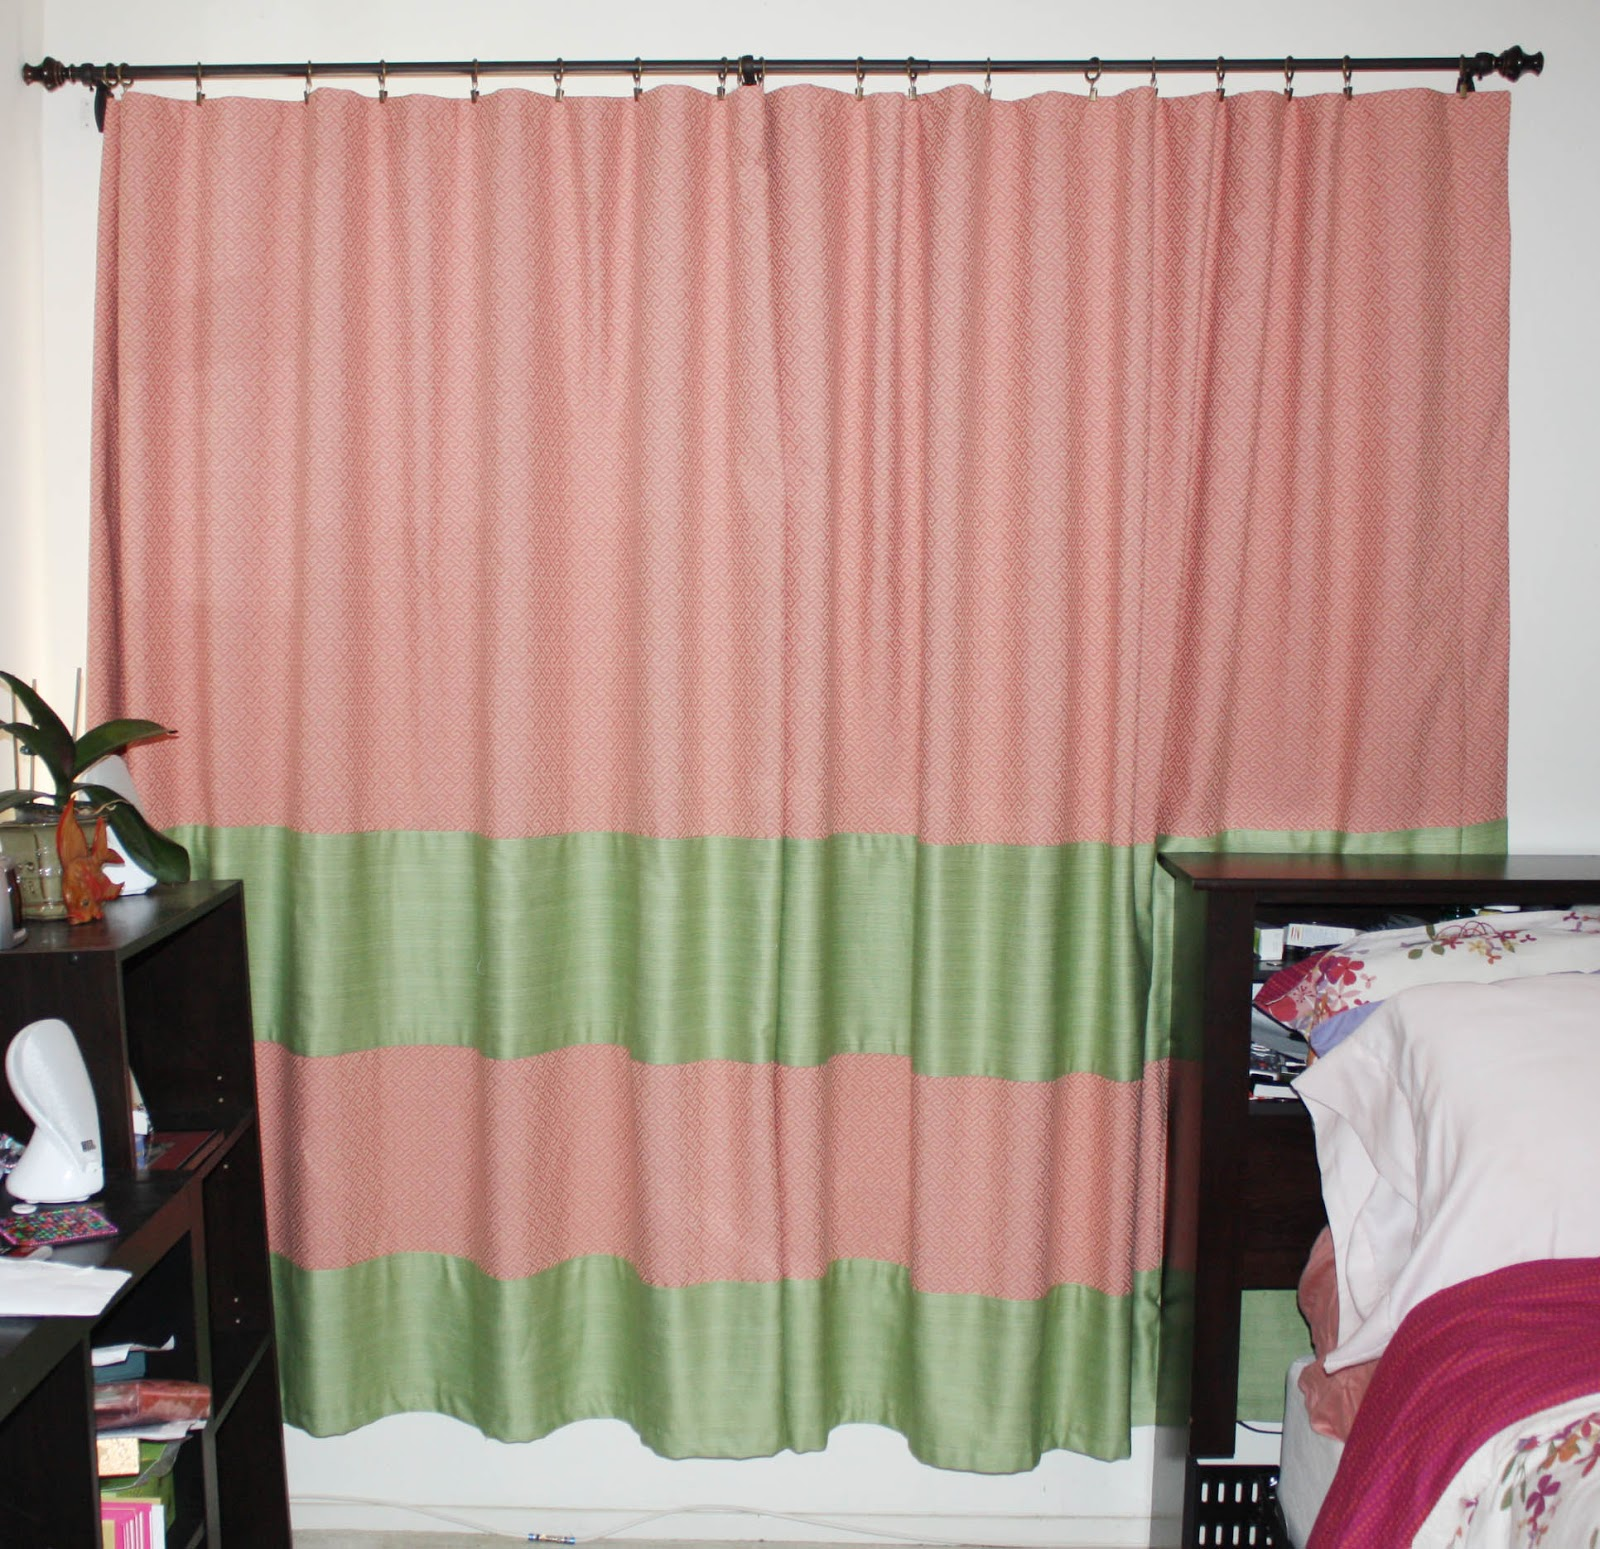 DIY Extra Wide Blackout Curtain Panels  Extra Wide Curtain Panels